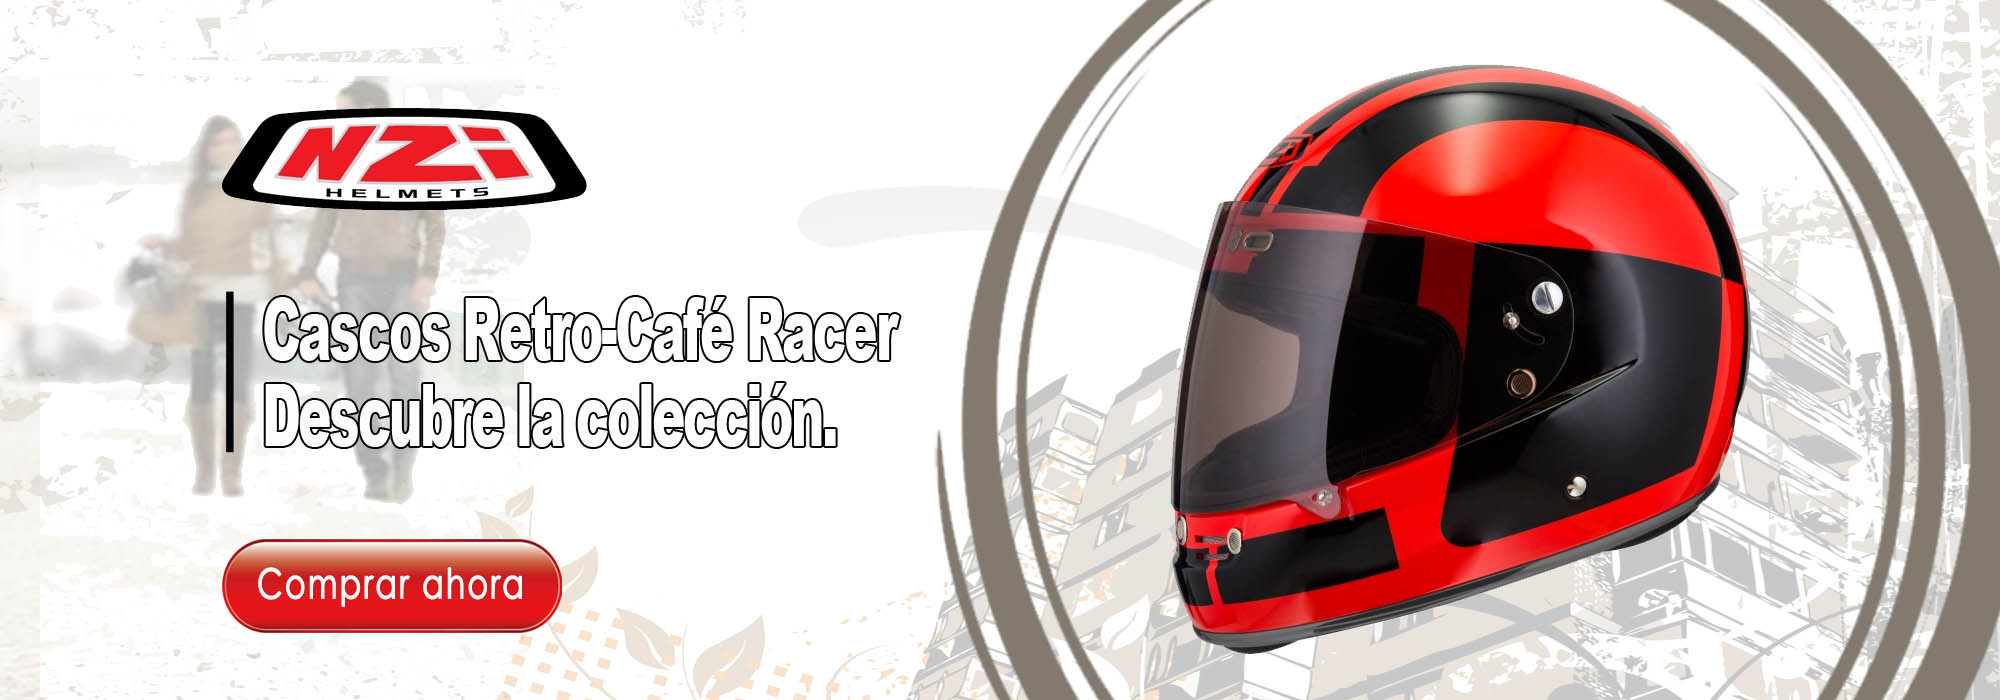 Cascos Retro-Cafe Racer